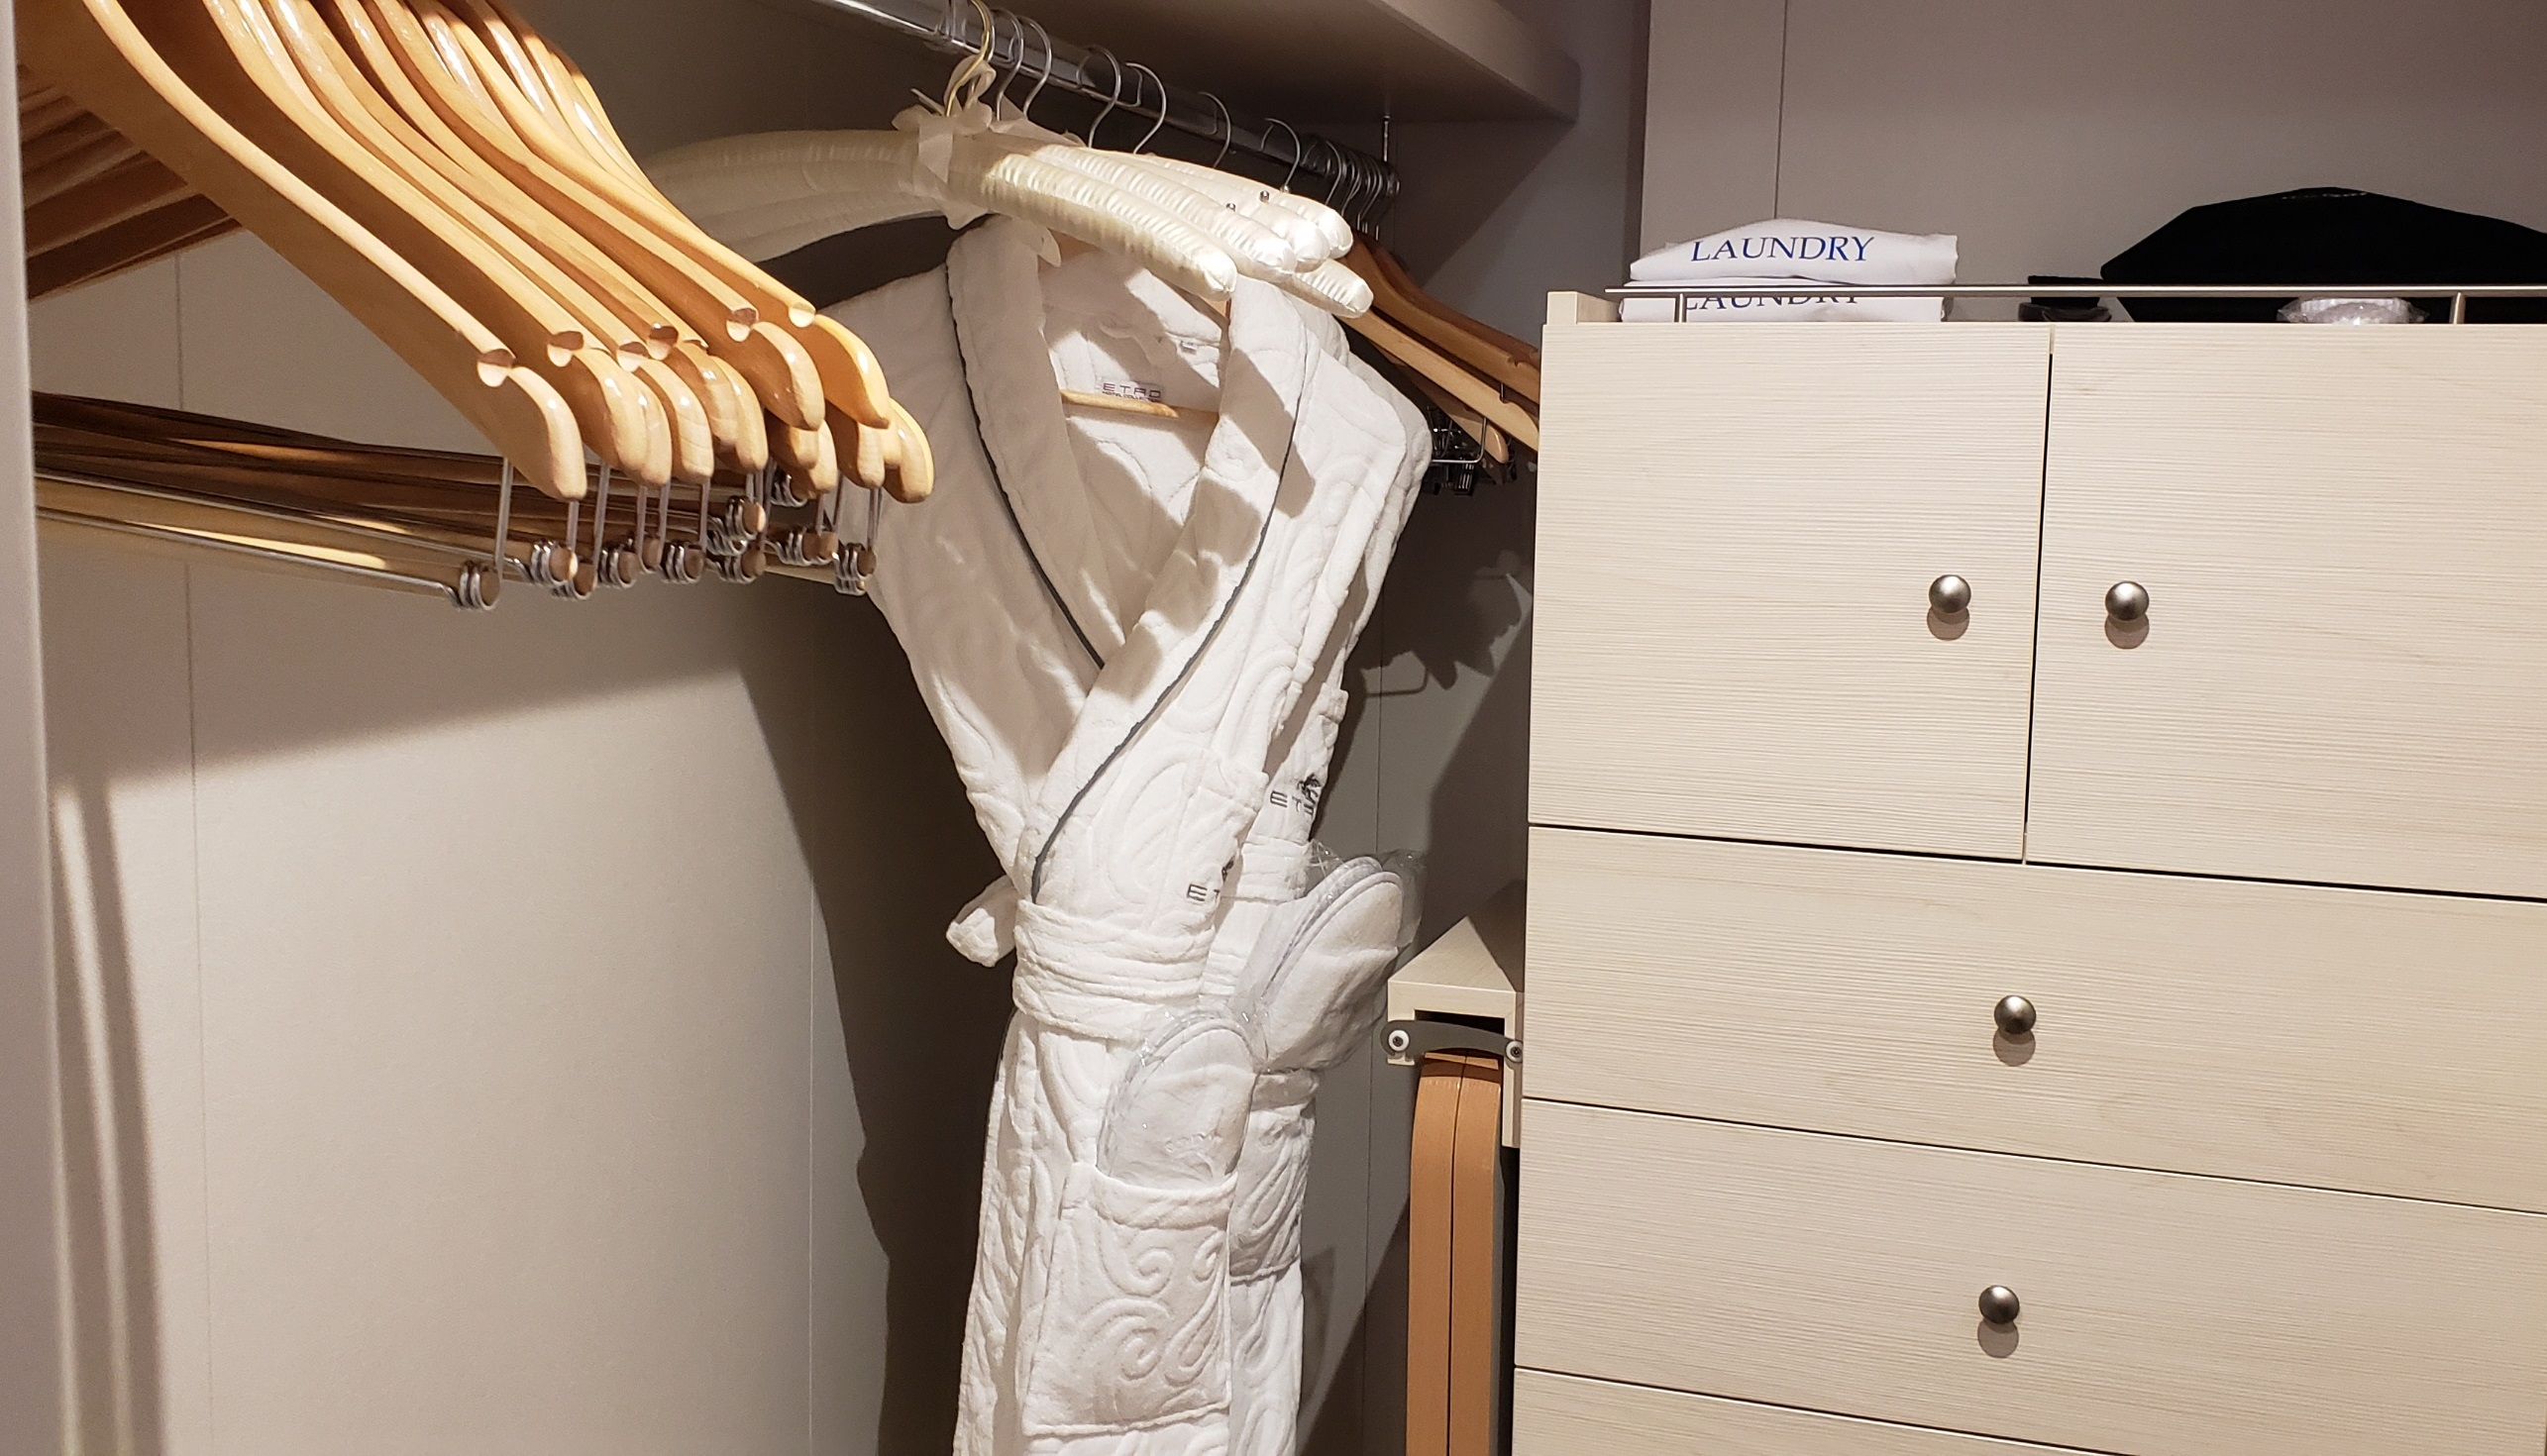 The closet has one long hanging bar plus a large chest of drawers and safe.